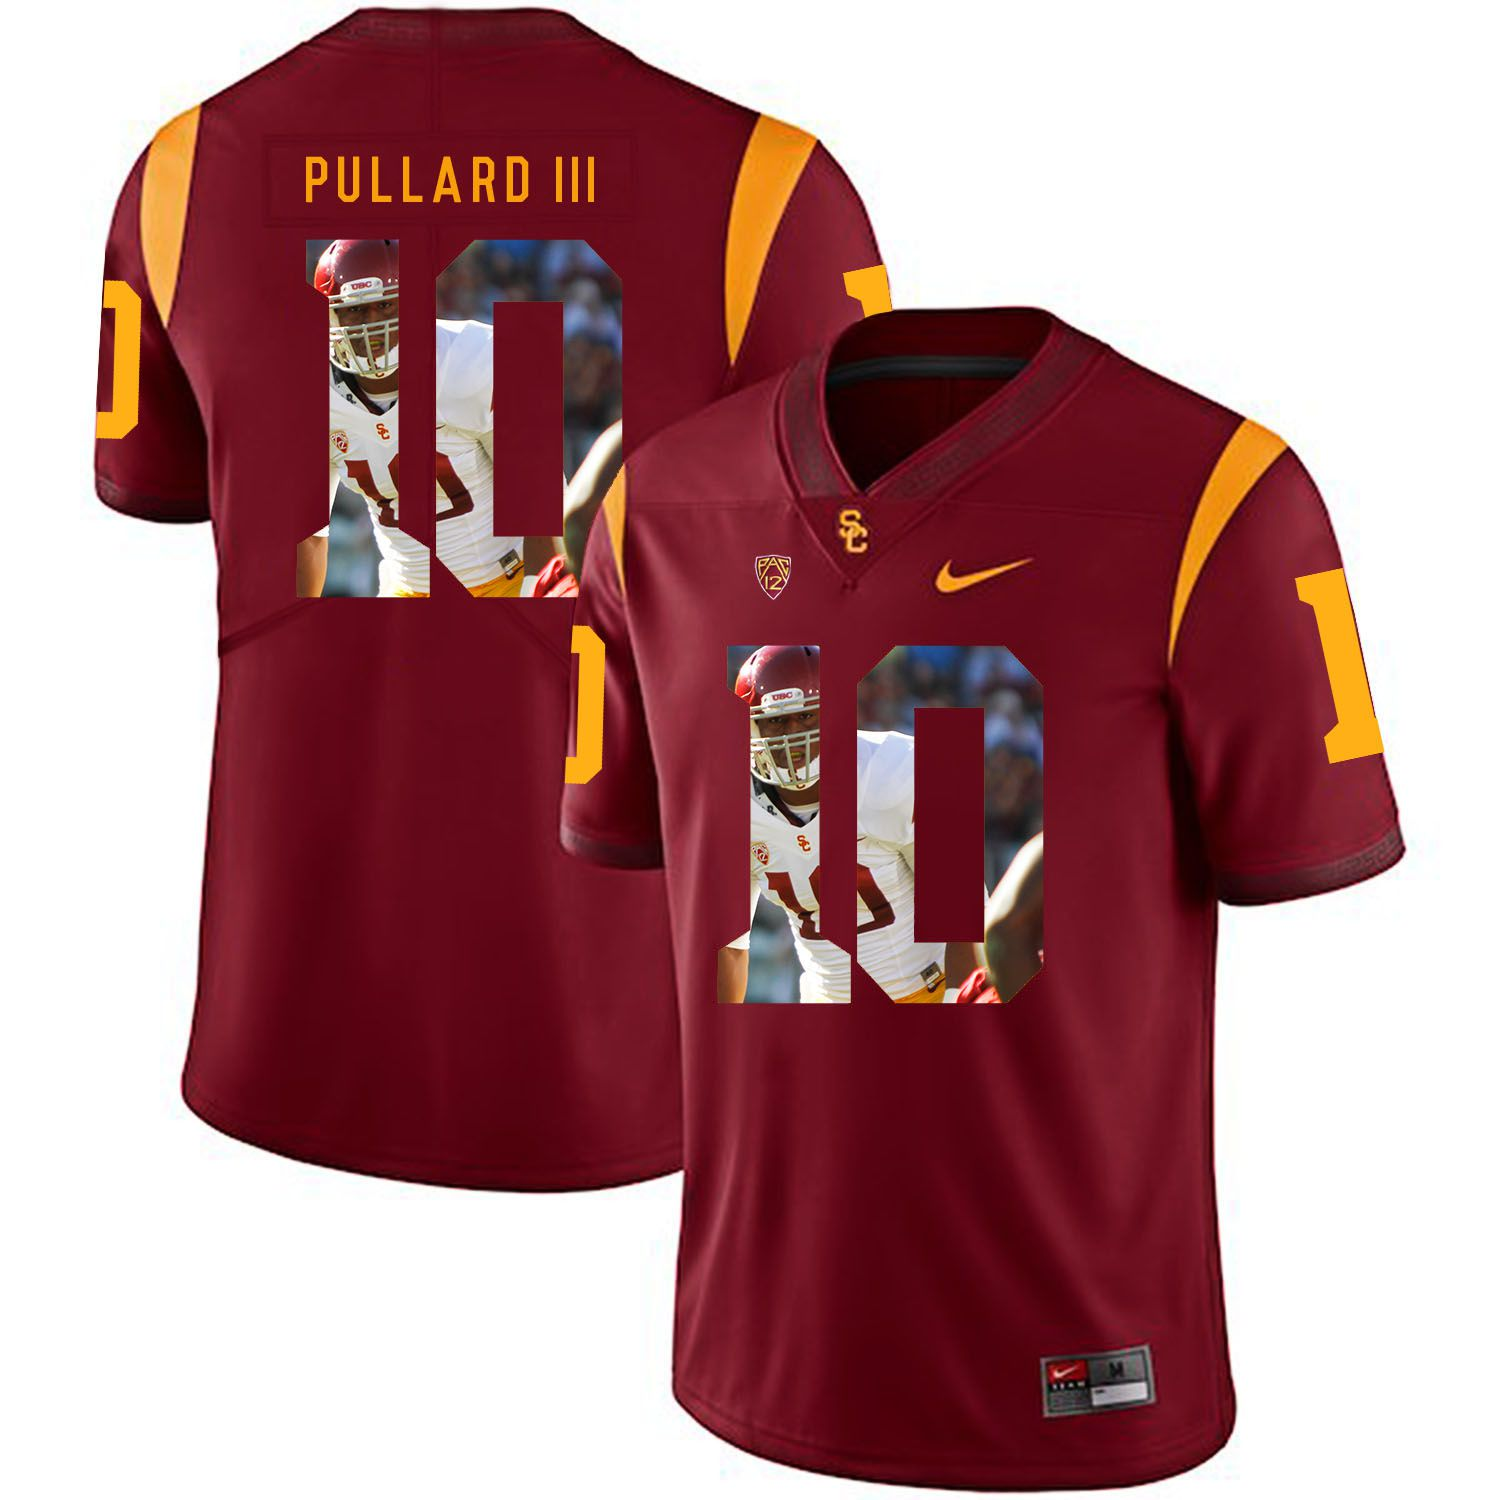 Men USC Trojans 10 Pullard iii Red Fashion Edition Customized NCAA Jerseys